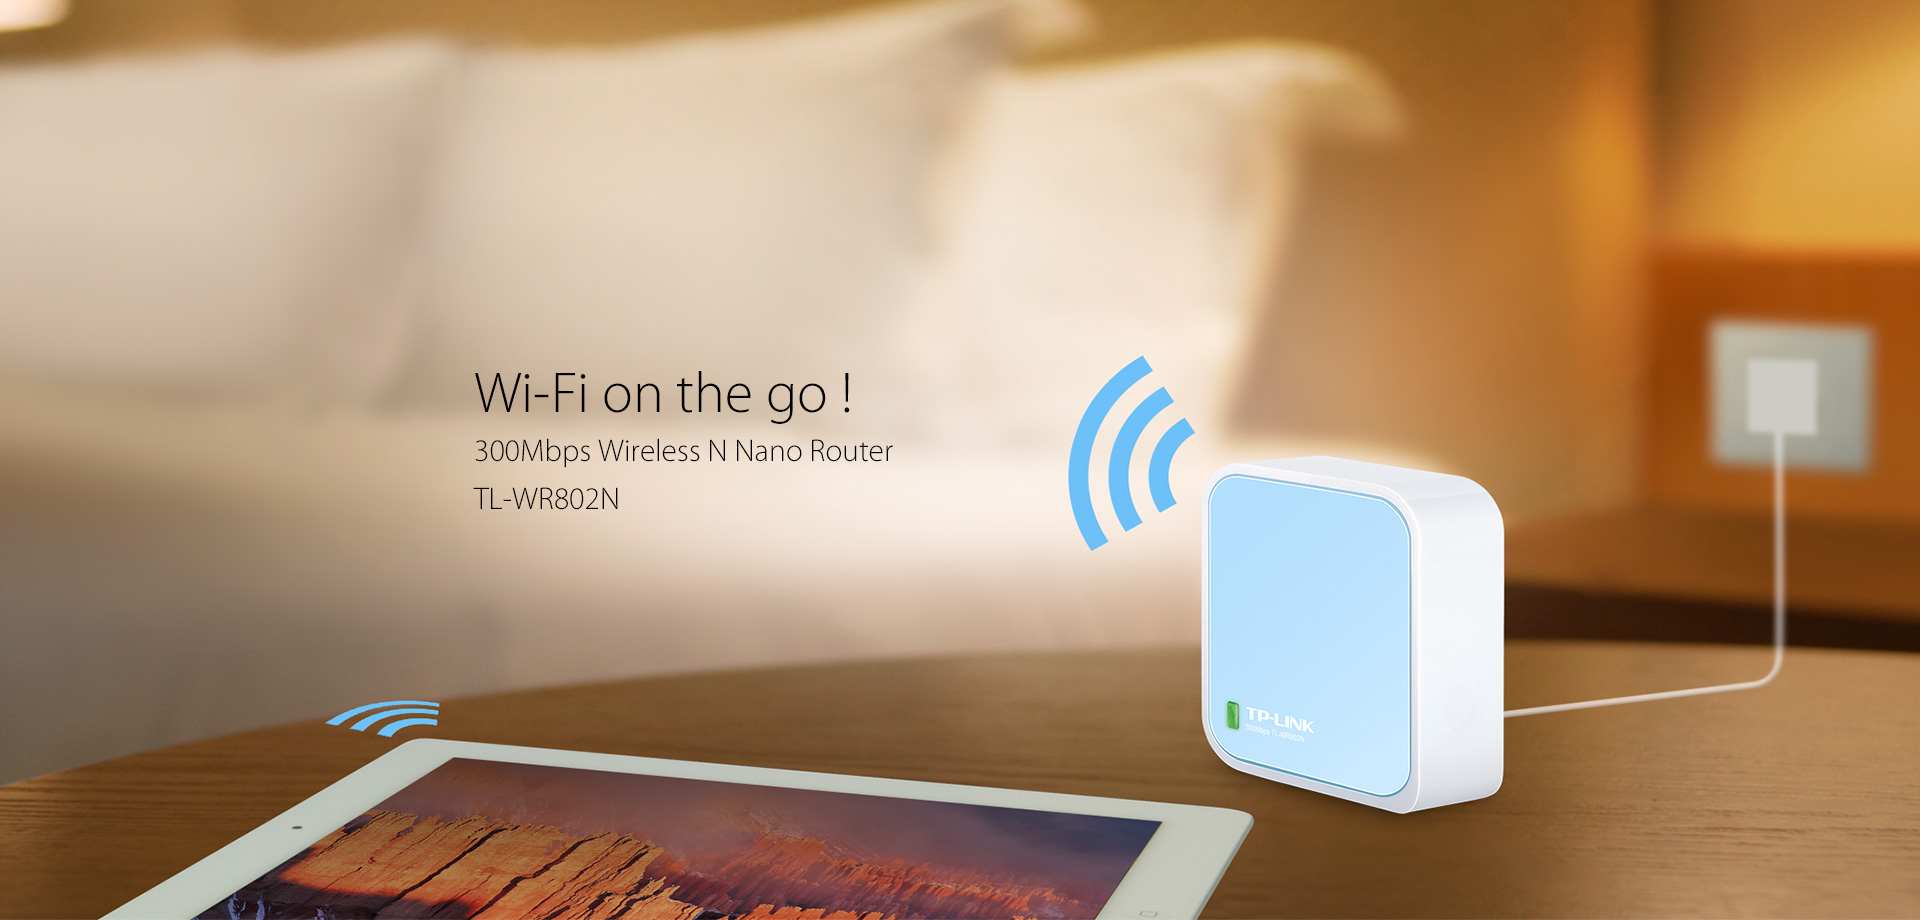 WiFi AP - Router : TP-LINK TL-WR802N V4 300Mbps Wireless N Nano Router